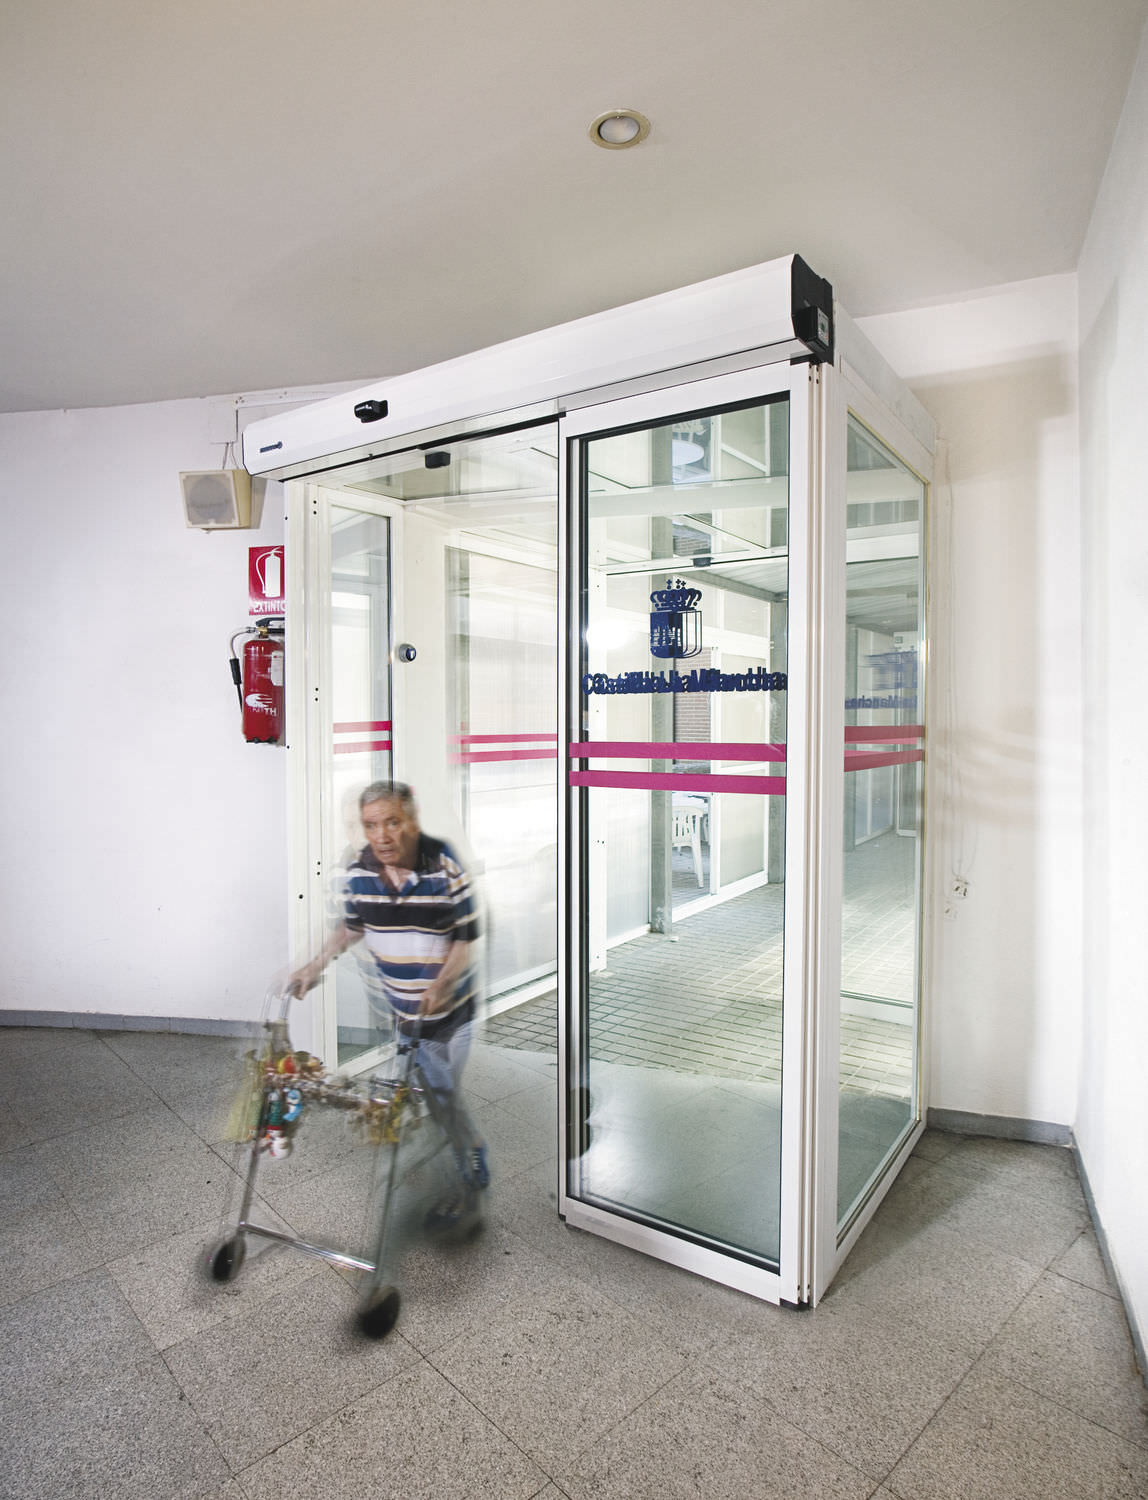 Cost of installing an automatic sliding and Swing door in Ontario.